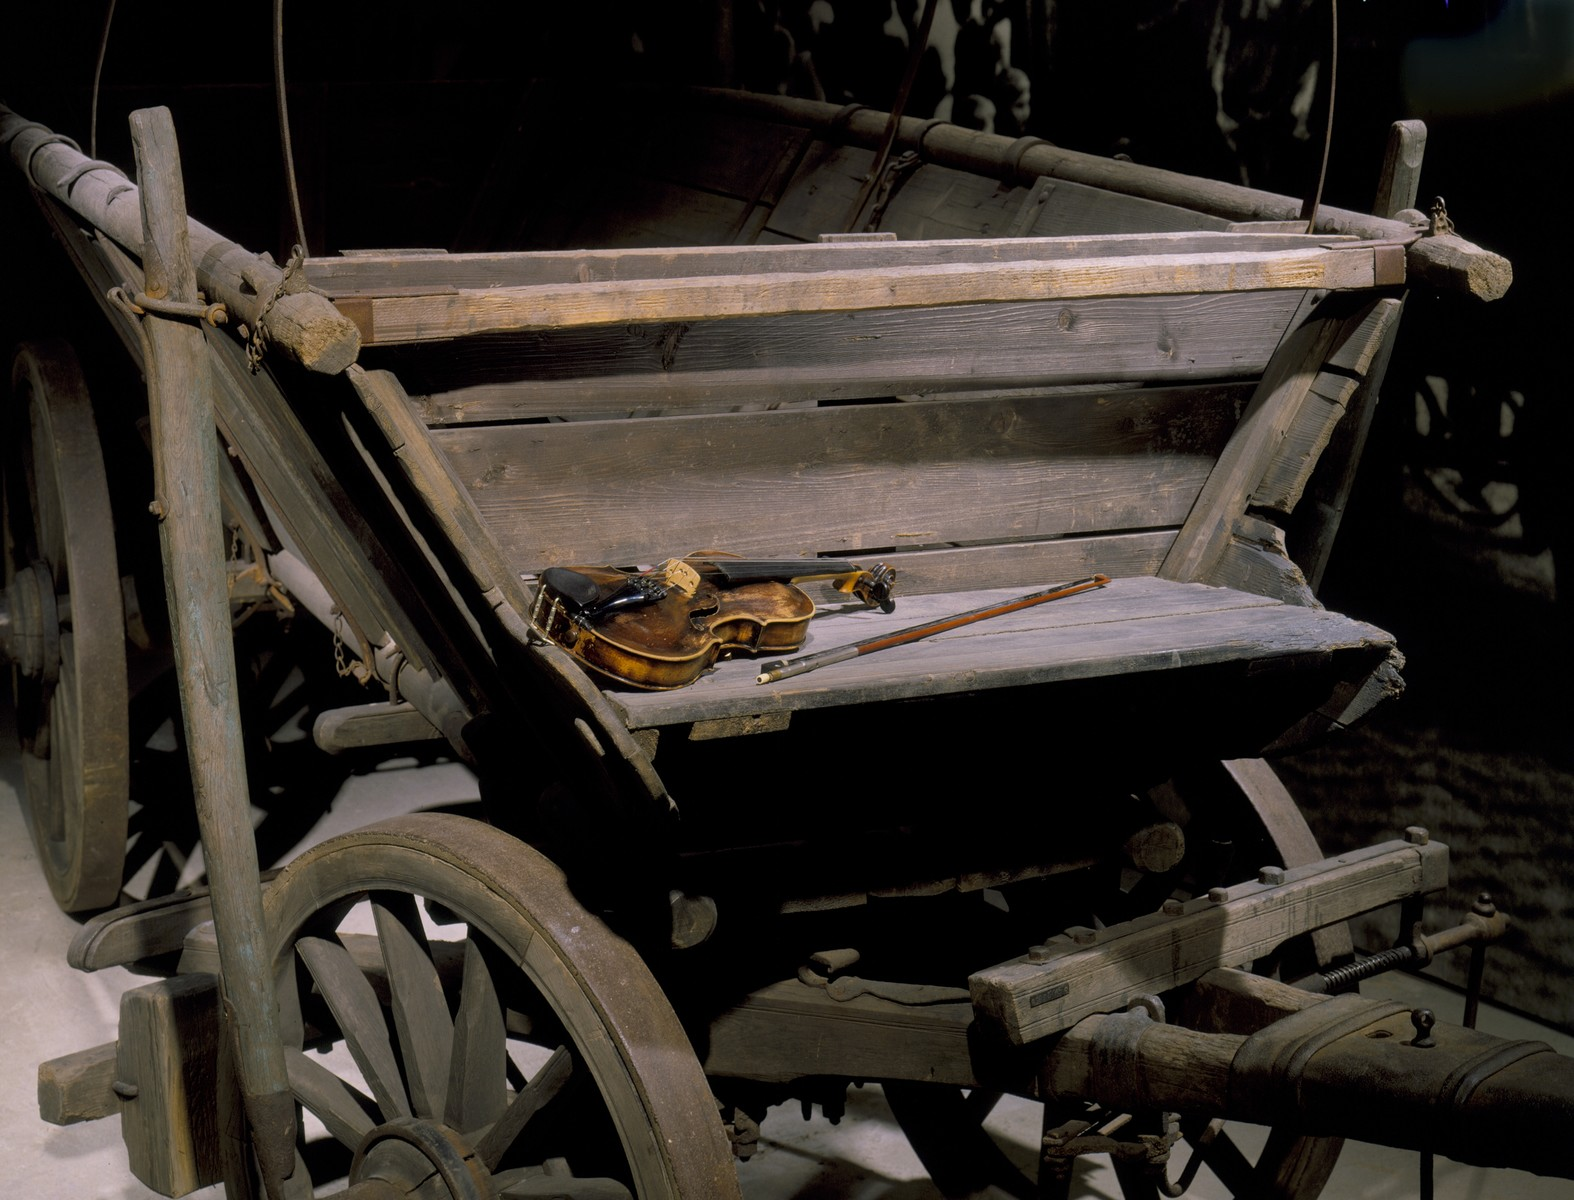 Detail of the Gypsy wagon and violin displayed on the fourth floor of the permanent exhibition at the U.S. Holocaust Memorial Museum.